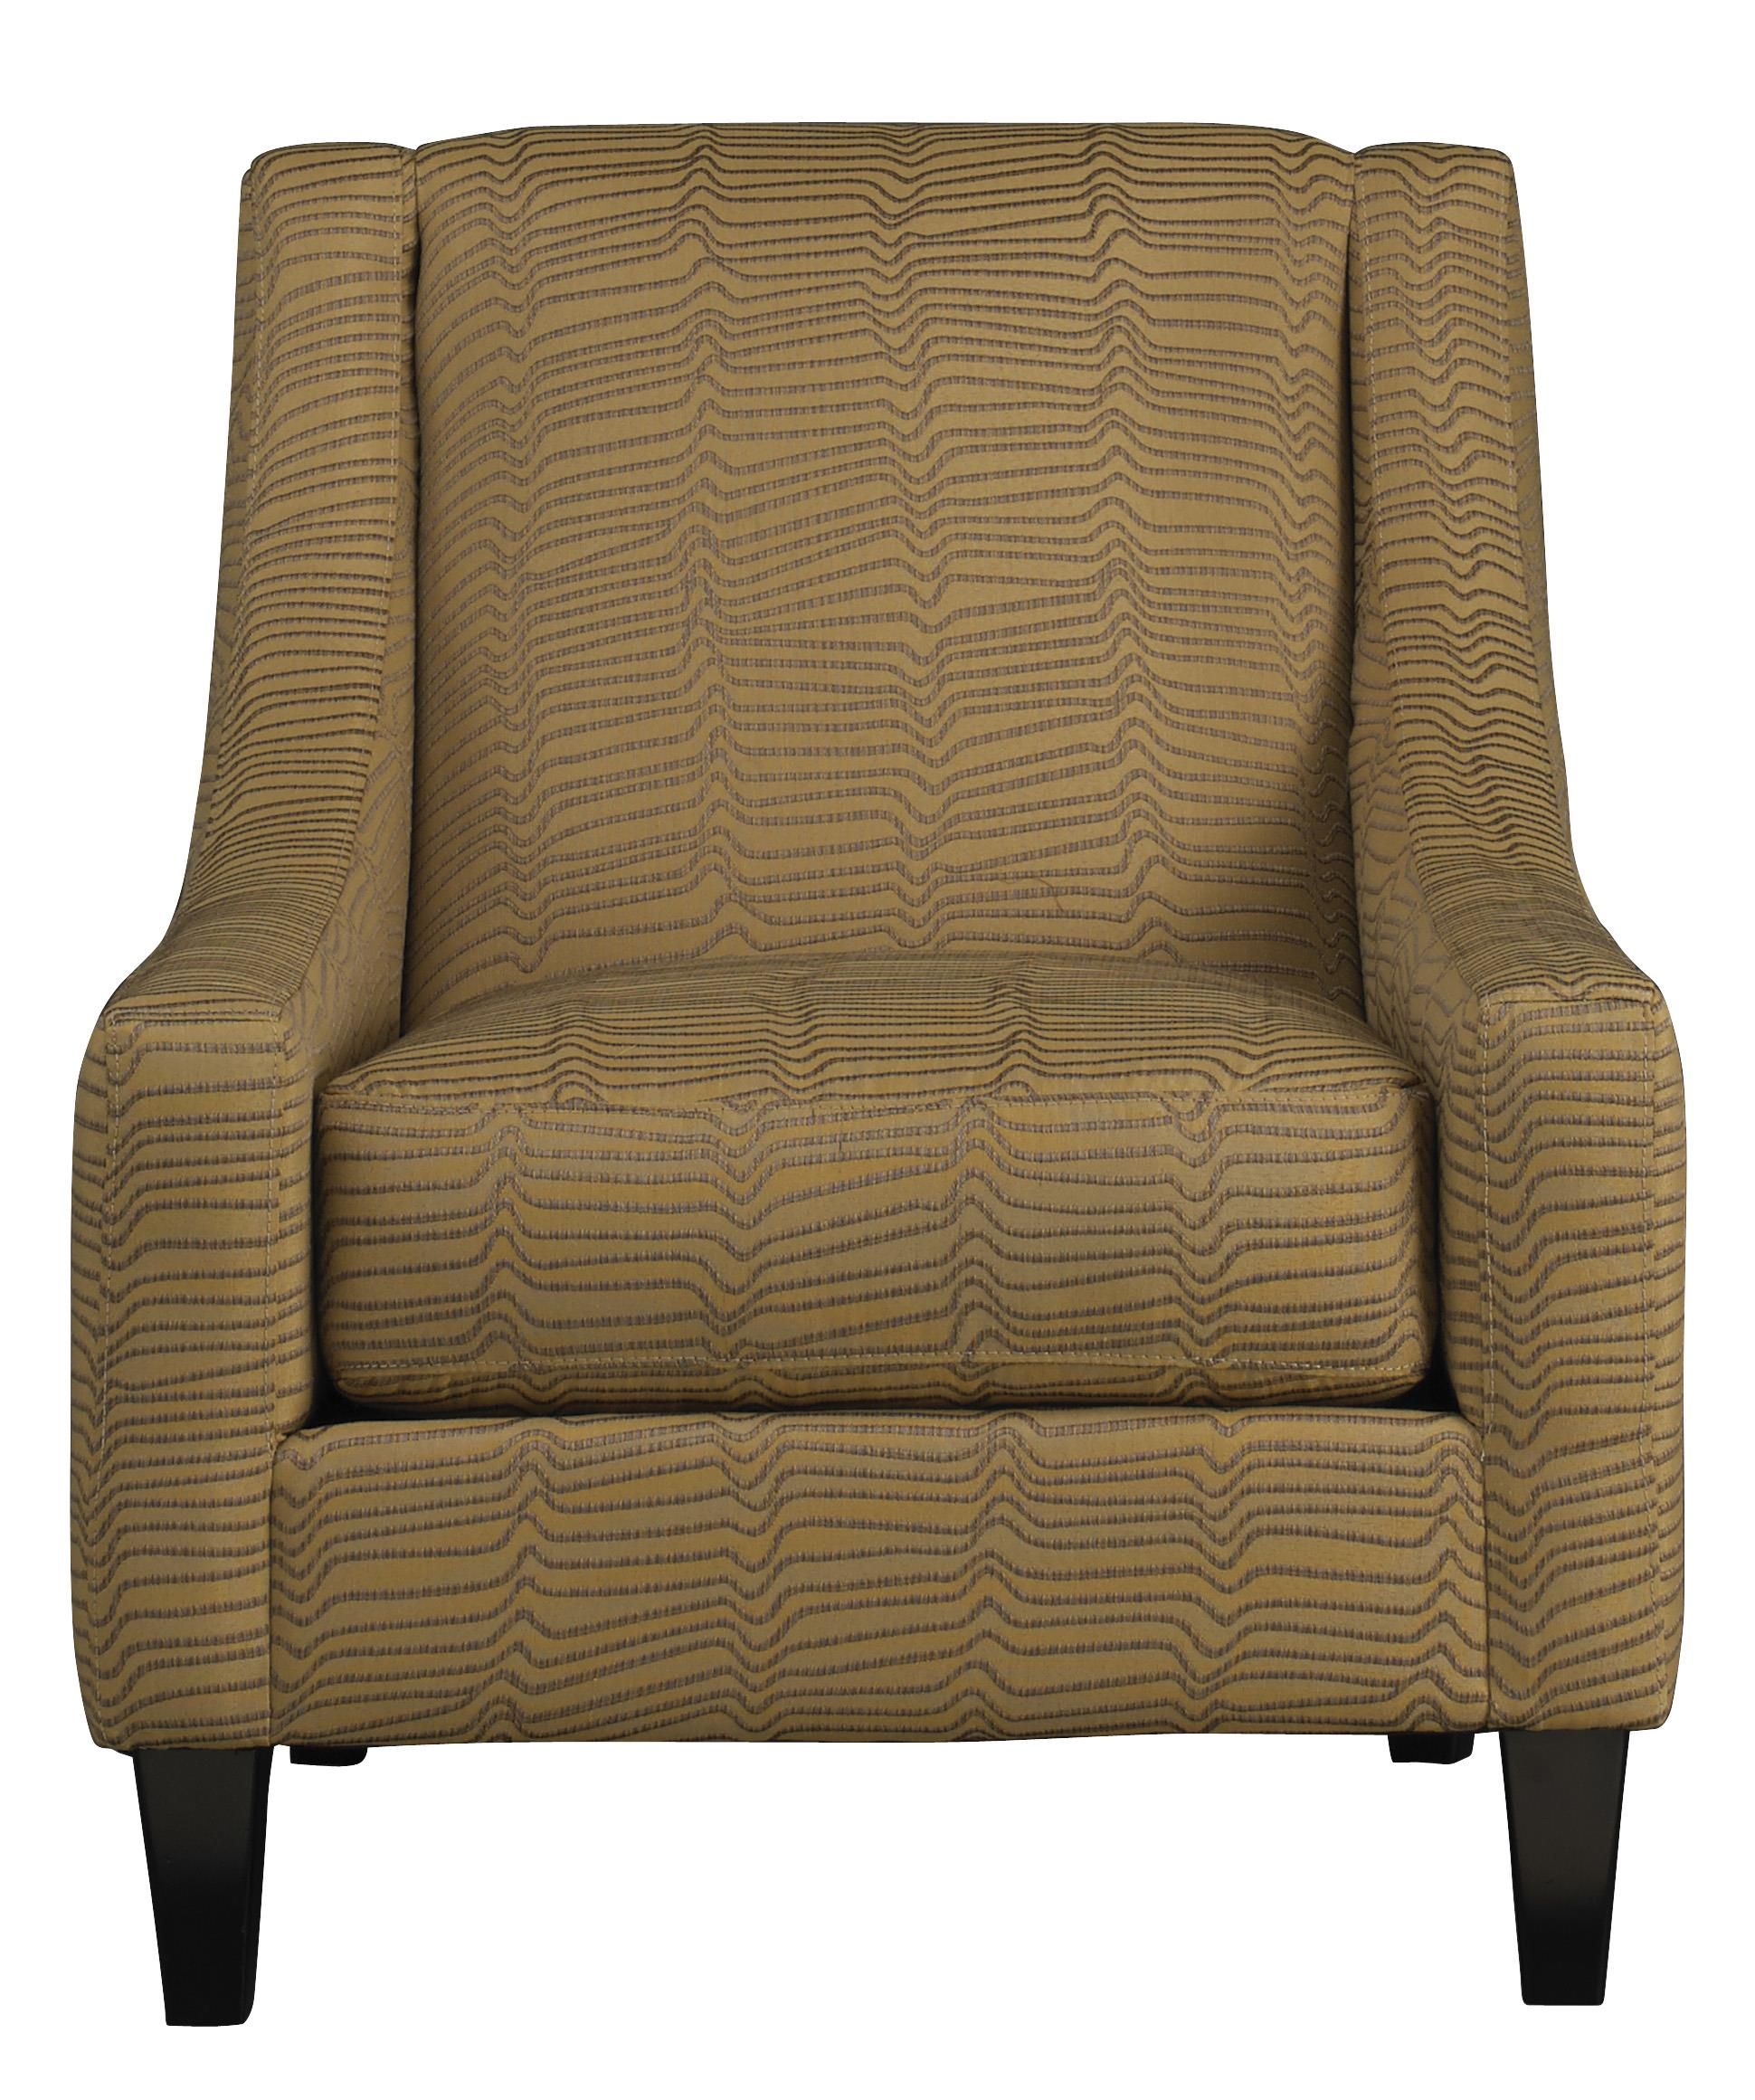 Metro Collection 450 Chair - Item Number: 450a